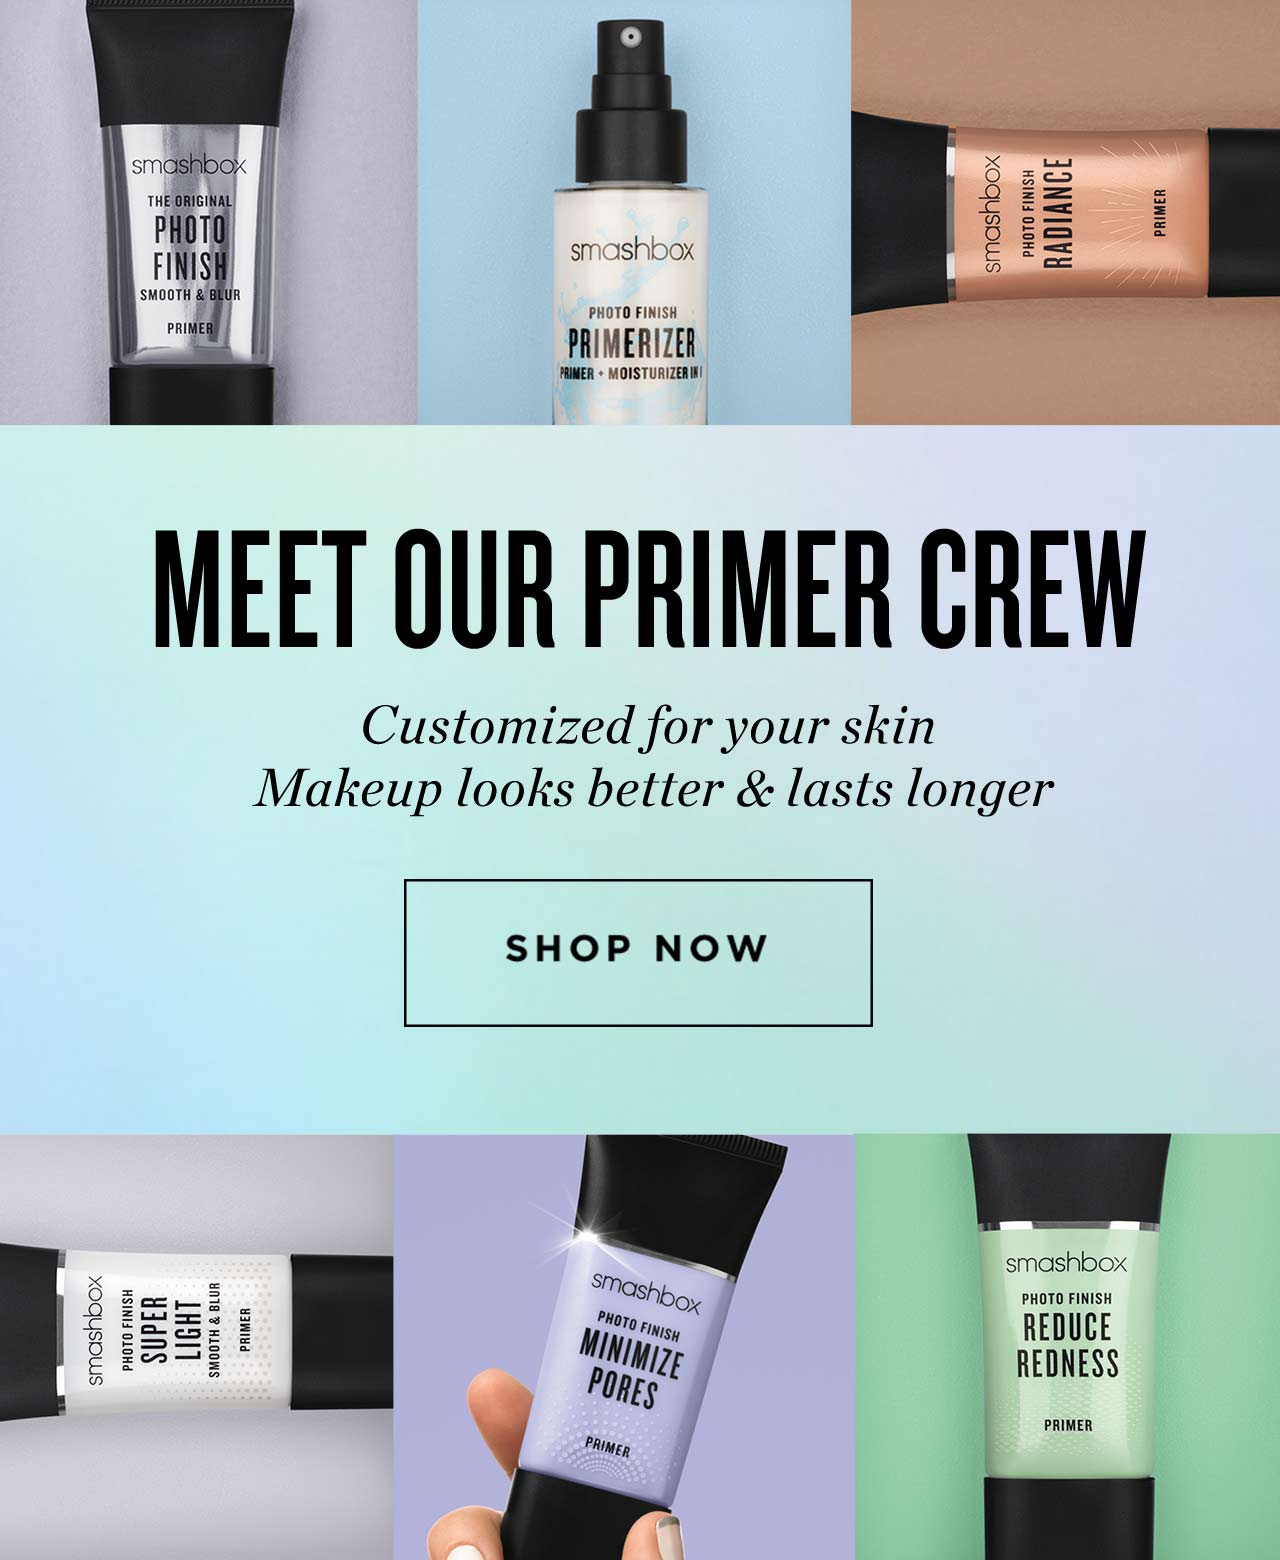 Photo Finish Primerizer. Primer + Moisturizer in one